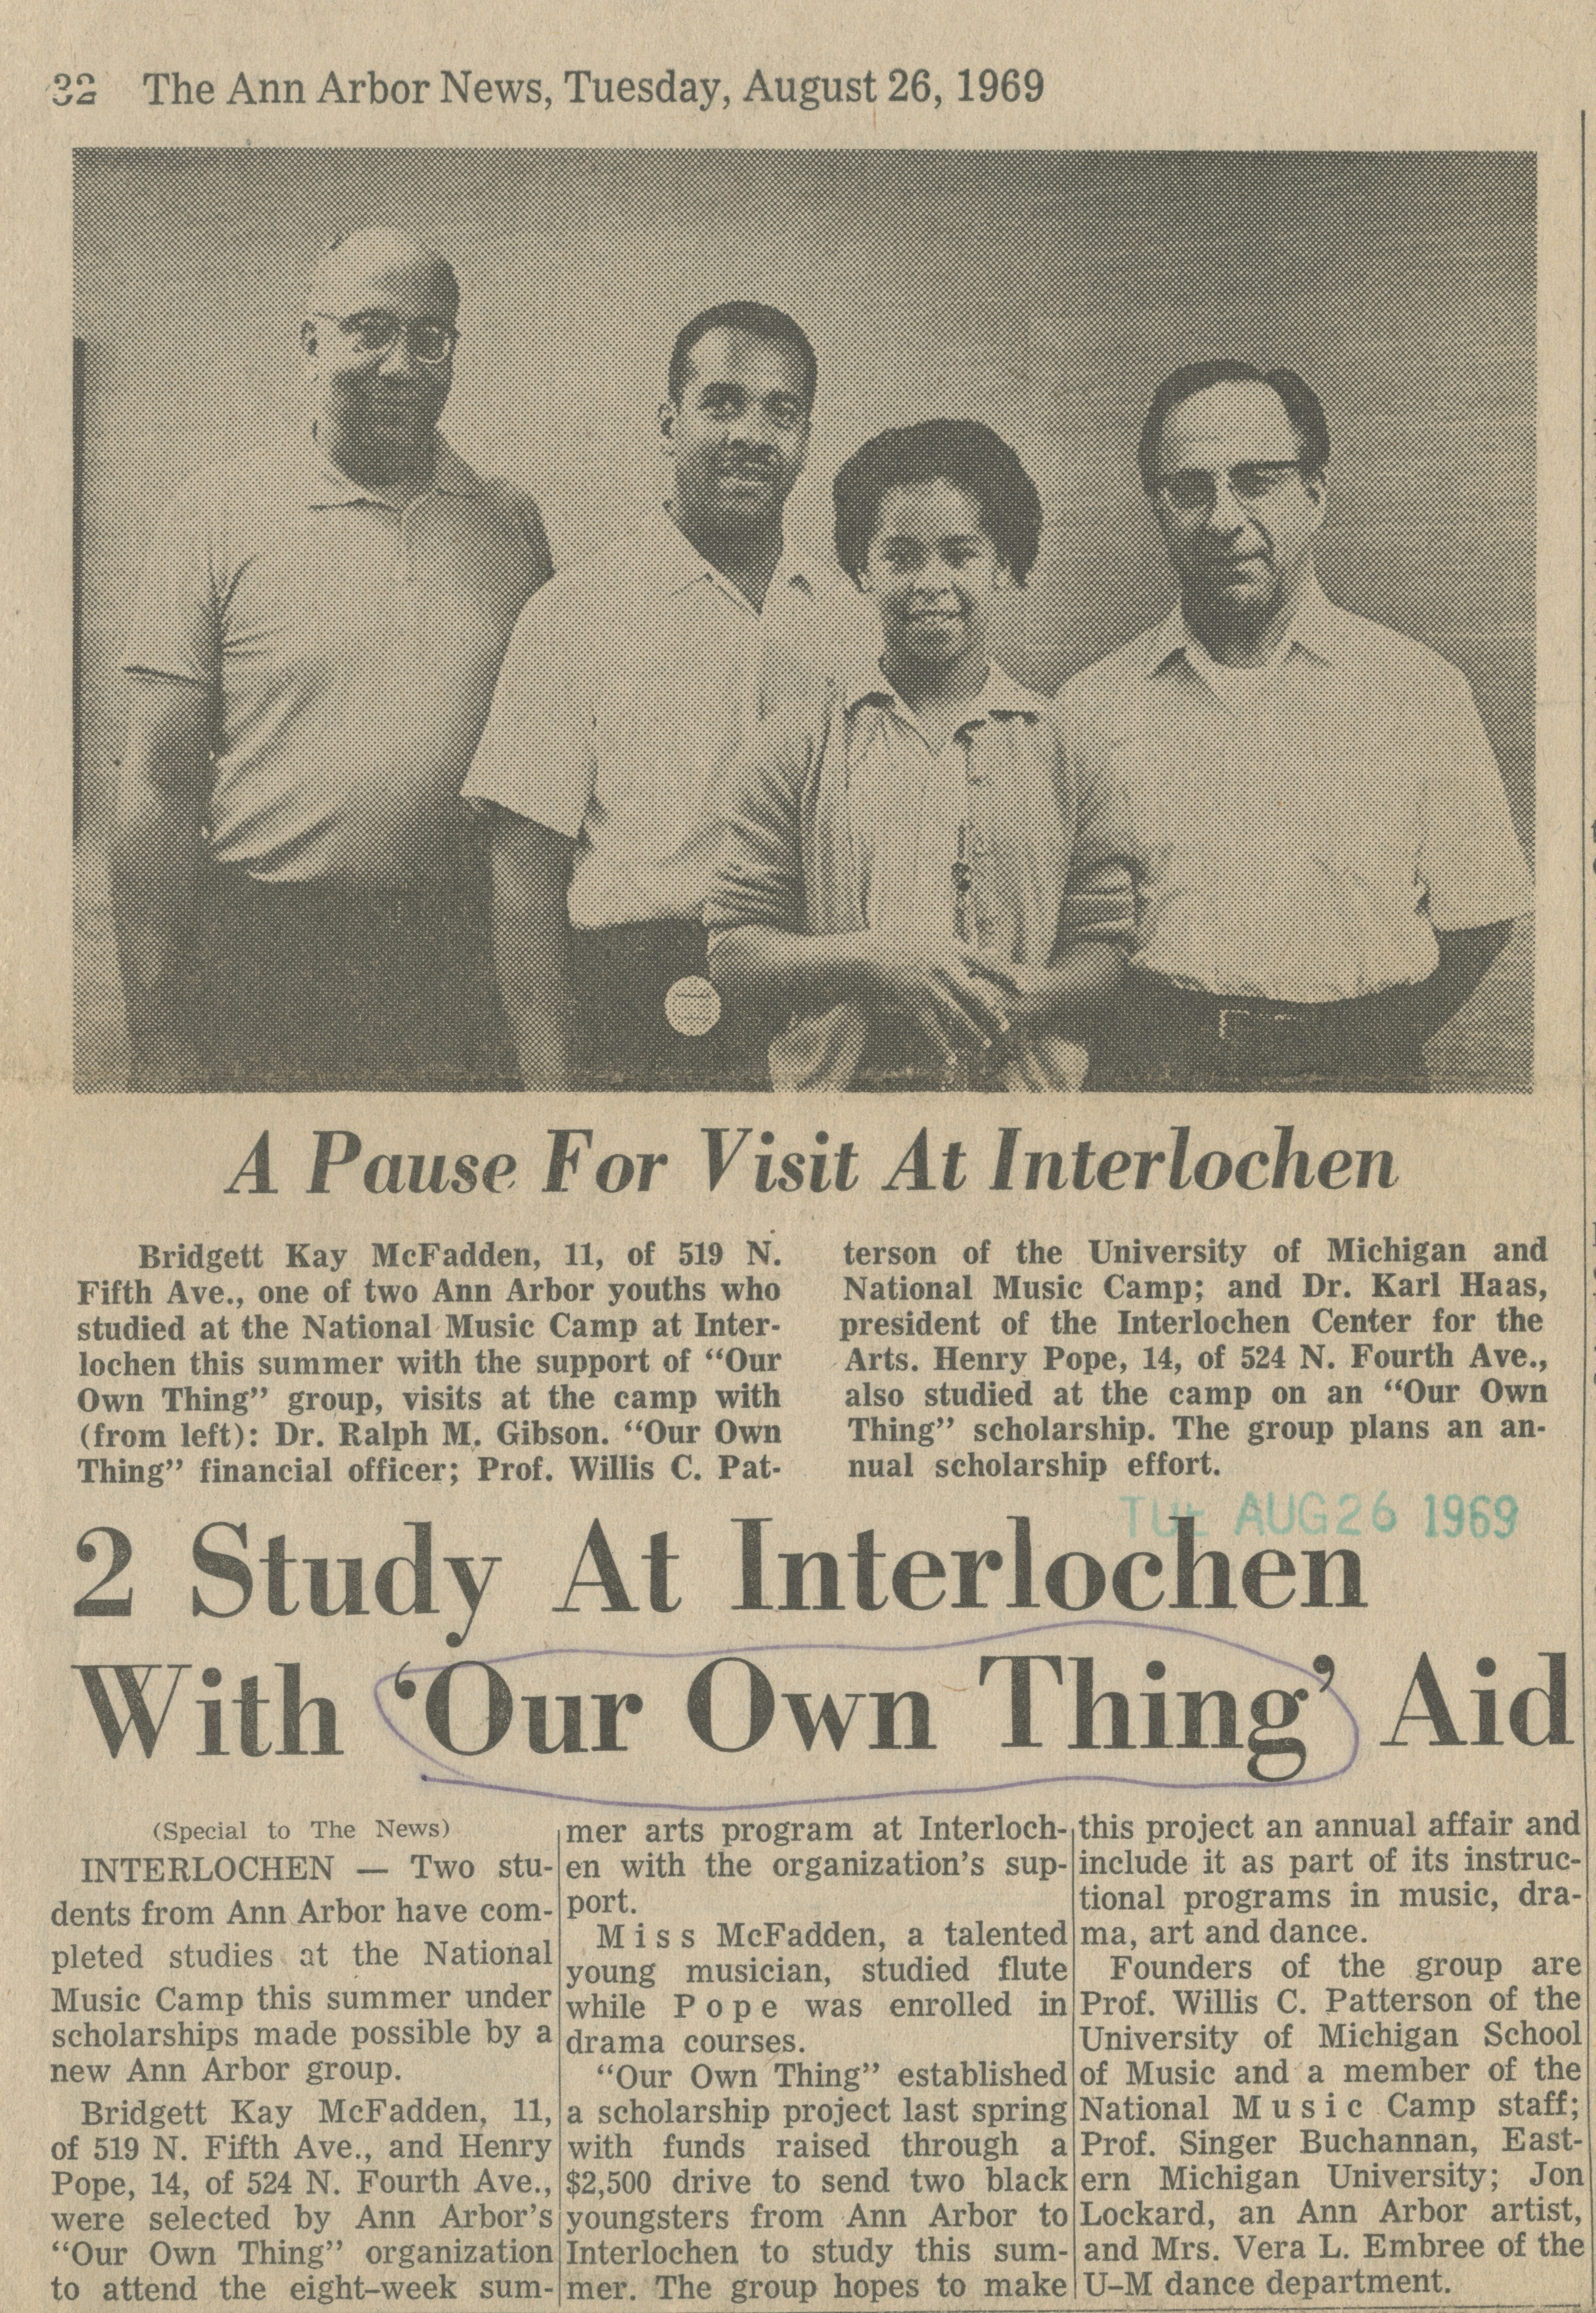 2 Study At Interlochen With 'Our Own Thing' Aid image